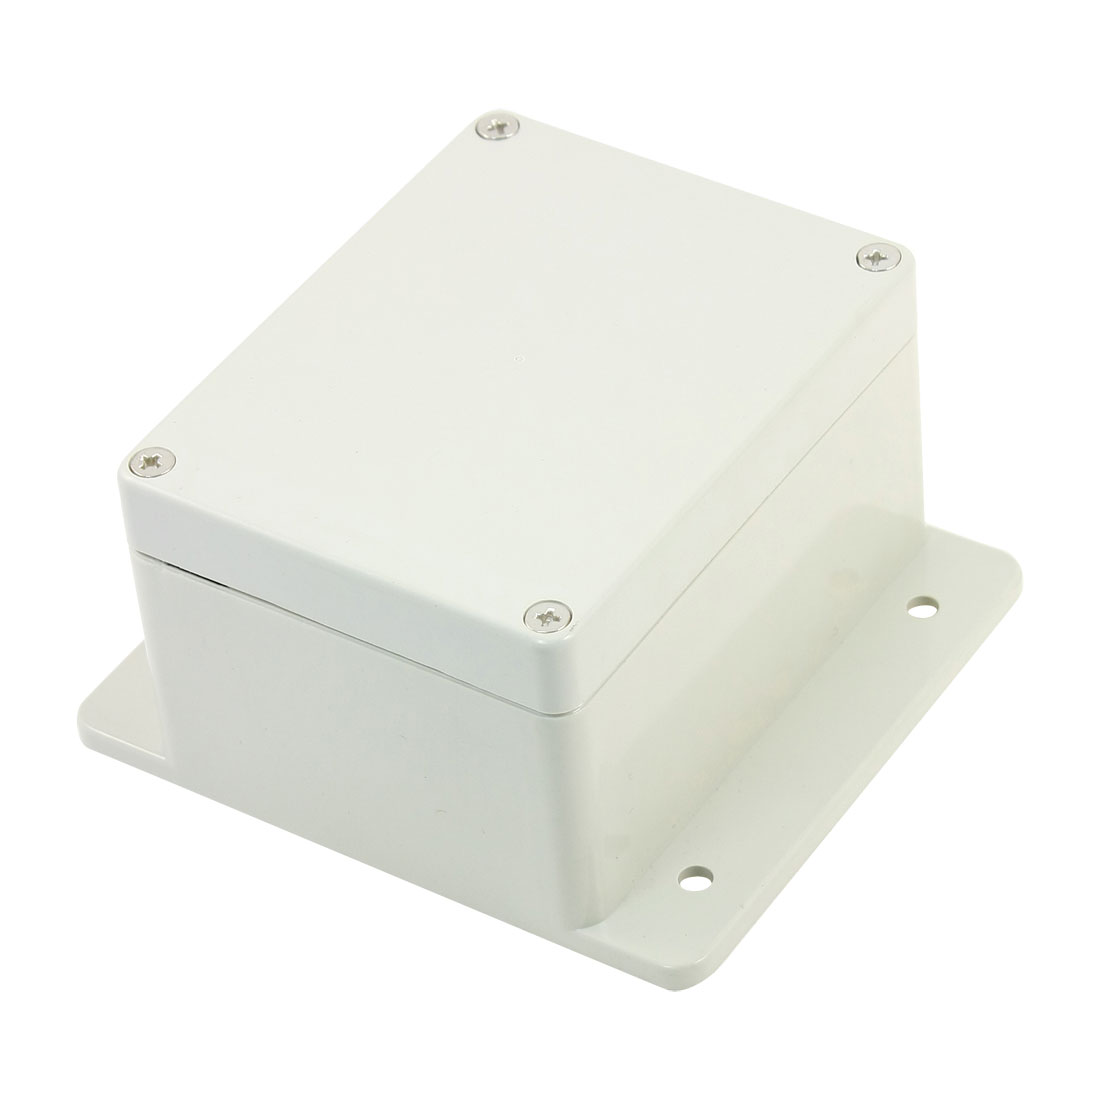 130mmx115mmx70mm Cable Connect Plastic Switch Junction Box Case Off White